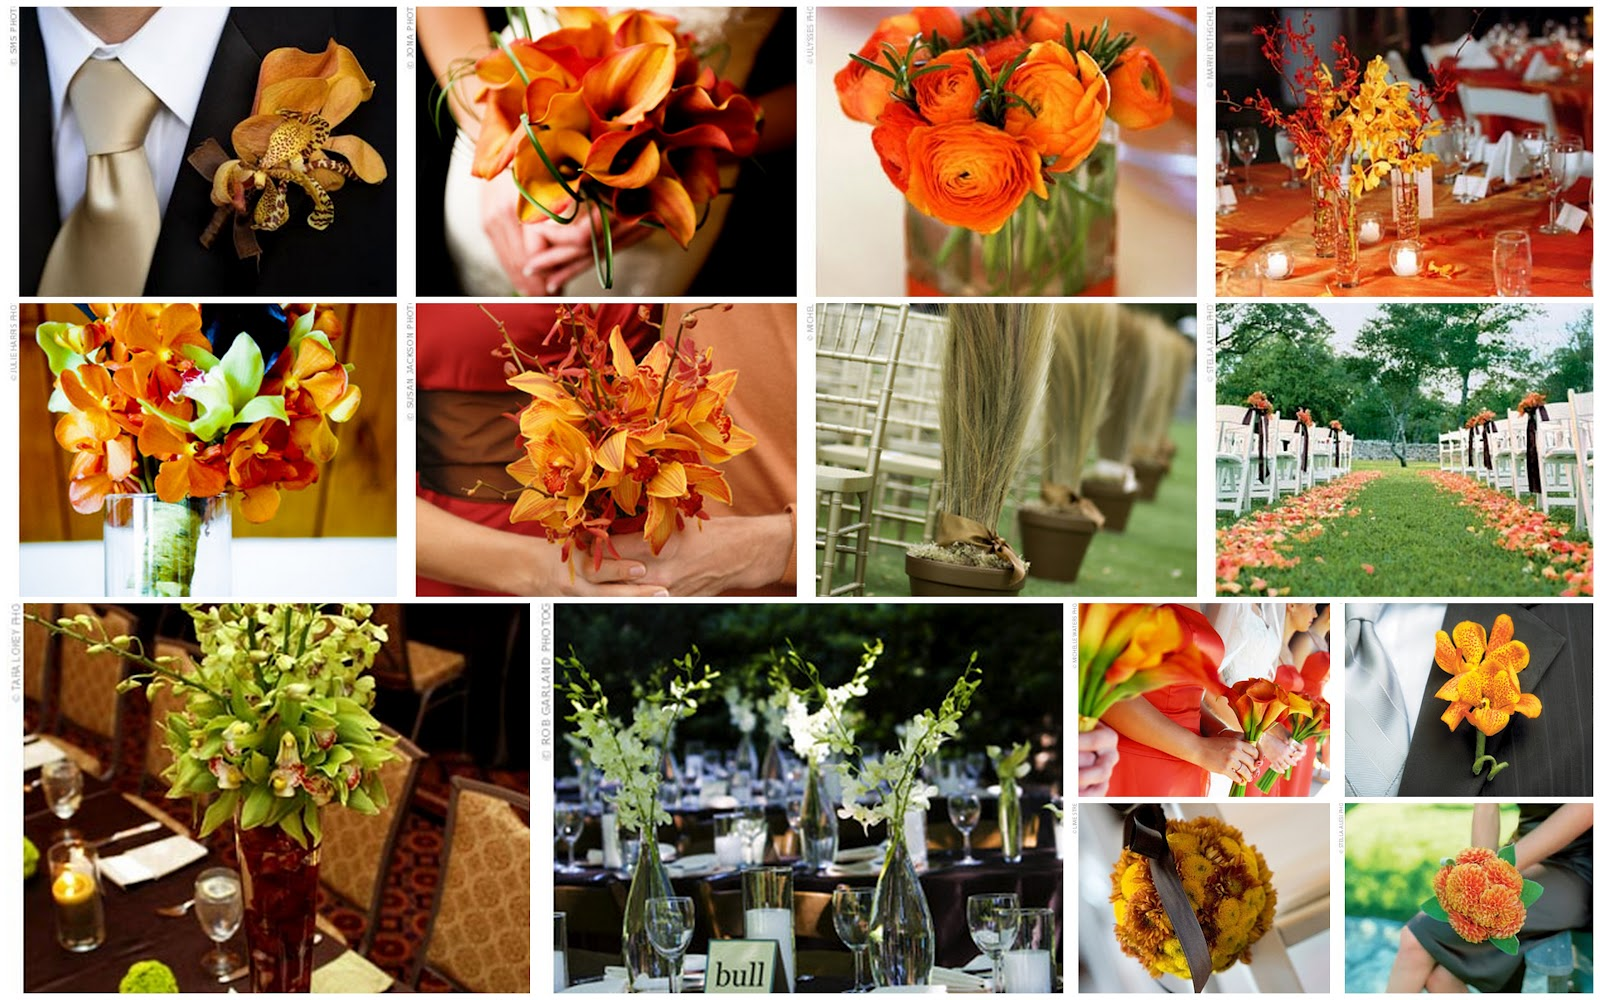 Fall wedding a wedding for adding a season s effect for Autumn wedding decoration ideas